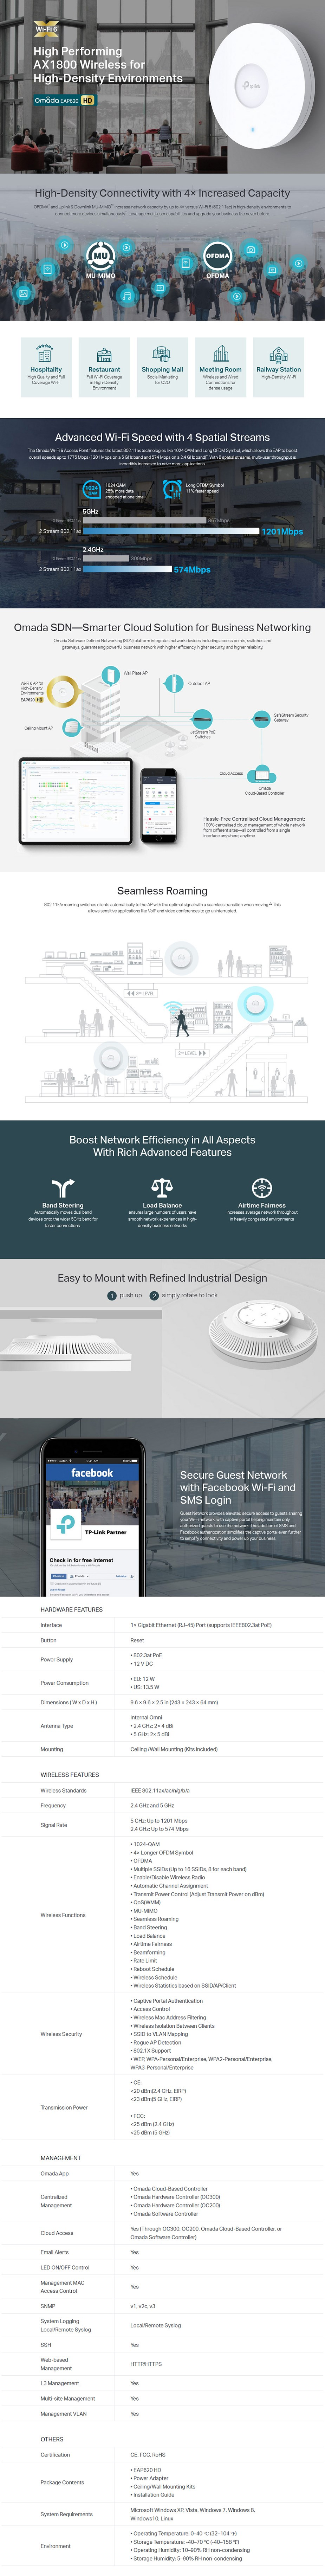 TP-Link EAP620-HD AX1800 Wireless Dual Band Gigabit Ceiling Mount Access Point - Overview 1